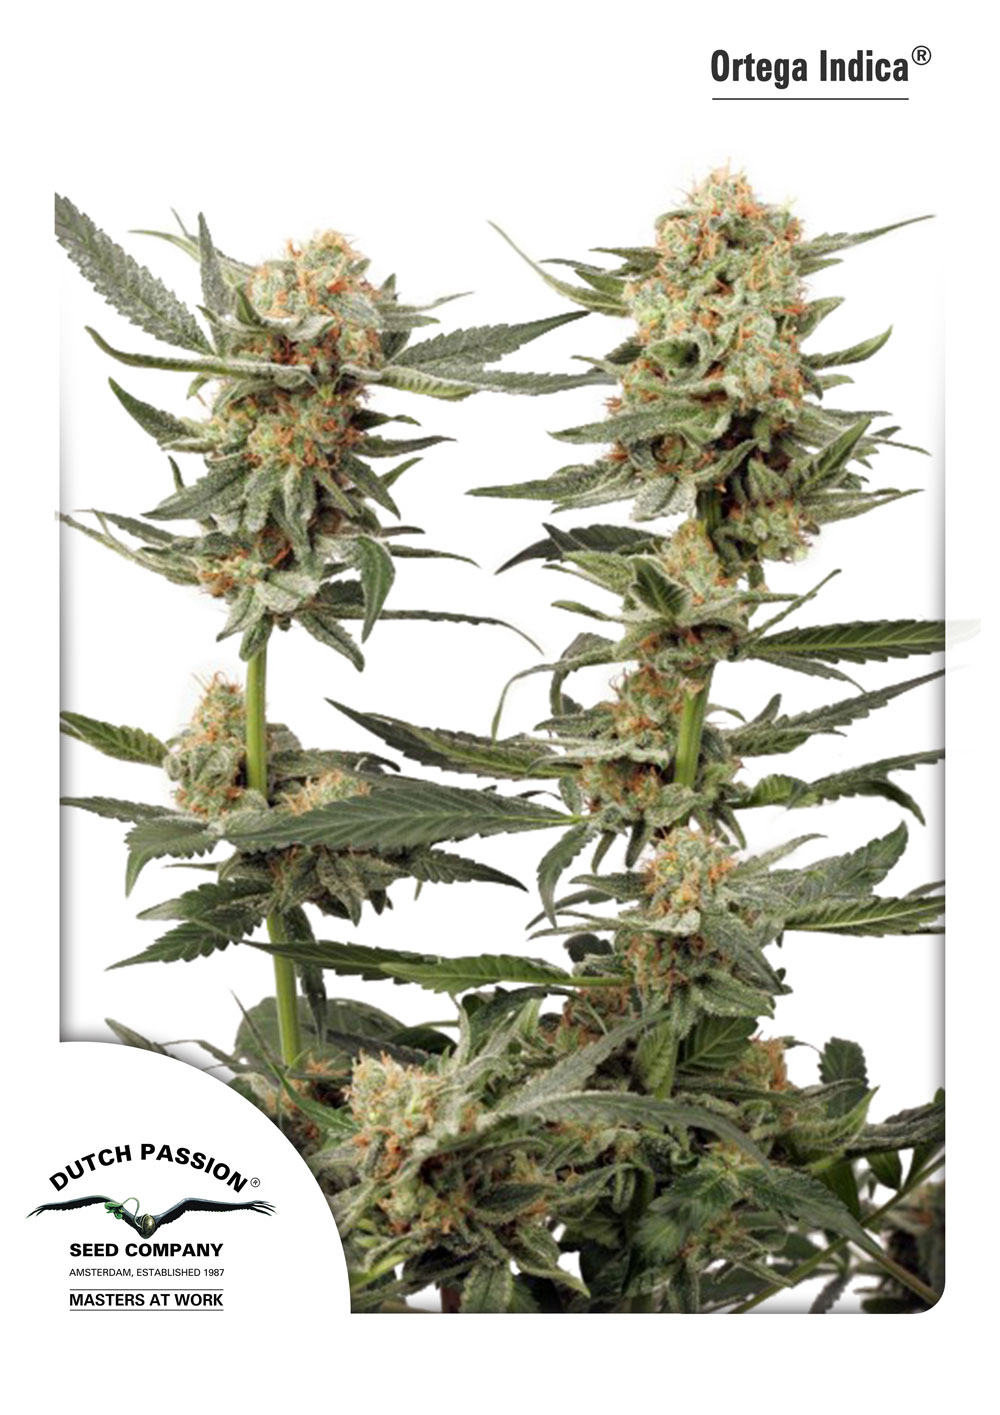 Recenzja Odmiany Ortega Indica od Dutch Passion, Dutch Seeds